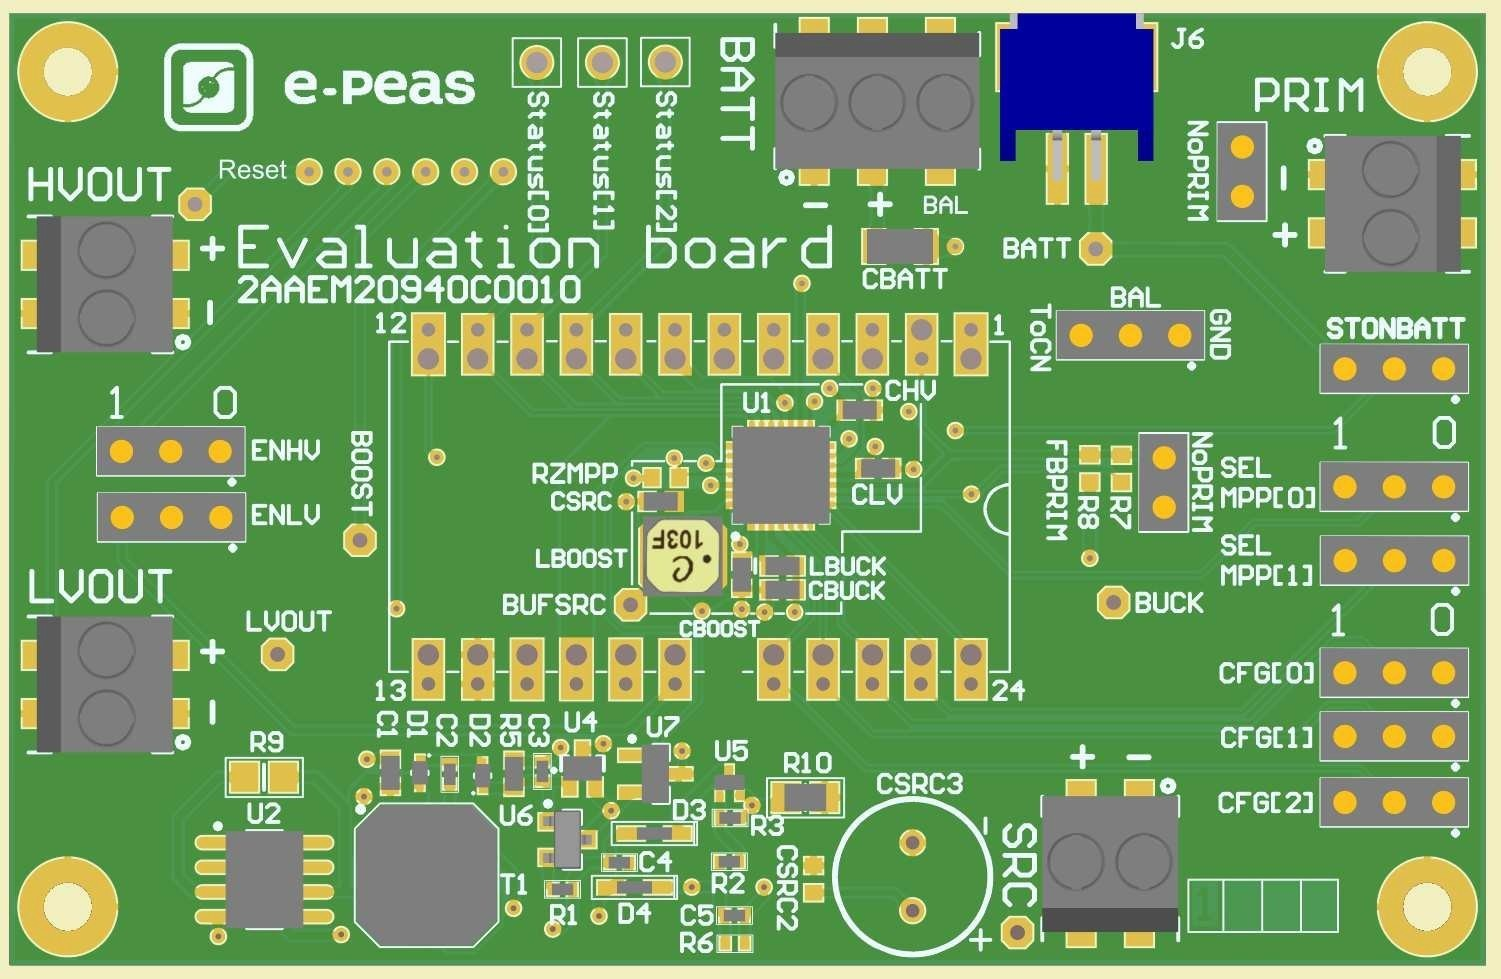 Evaluation Board for the AEM20940